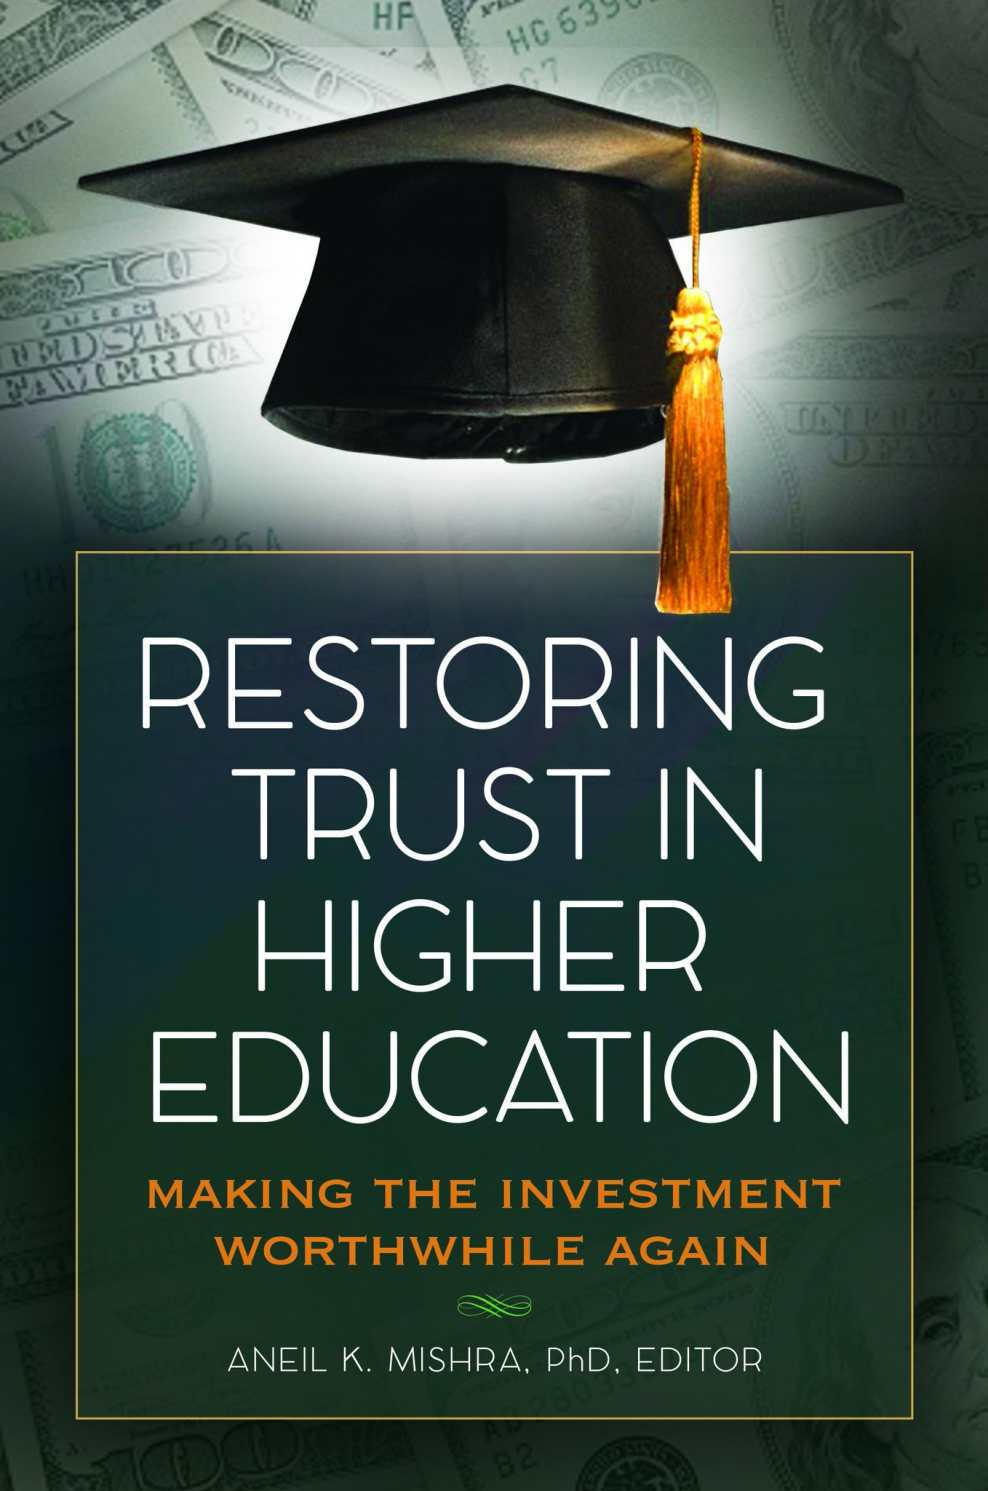 New Book on Higher Ed